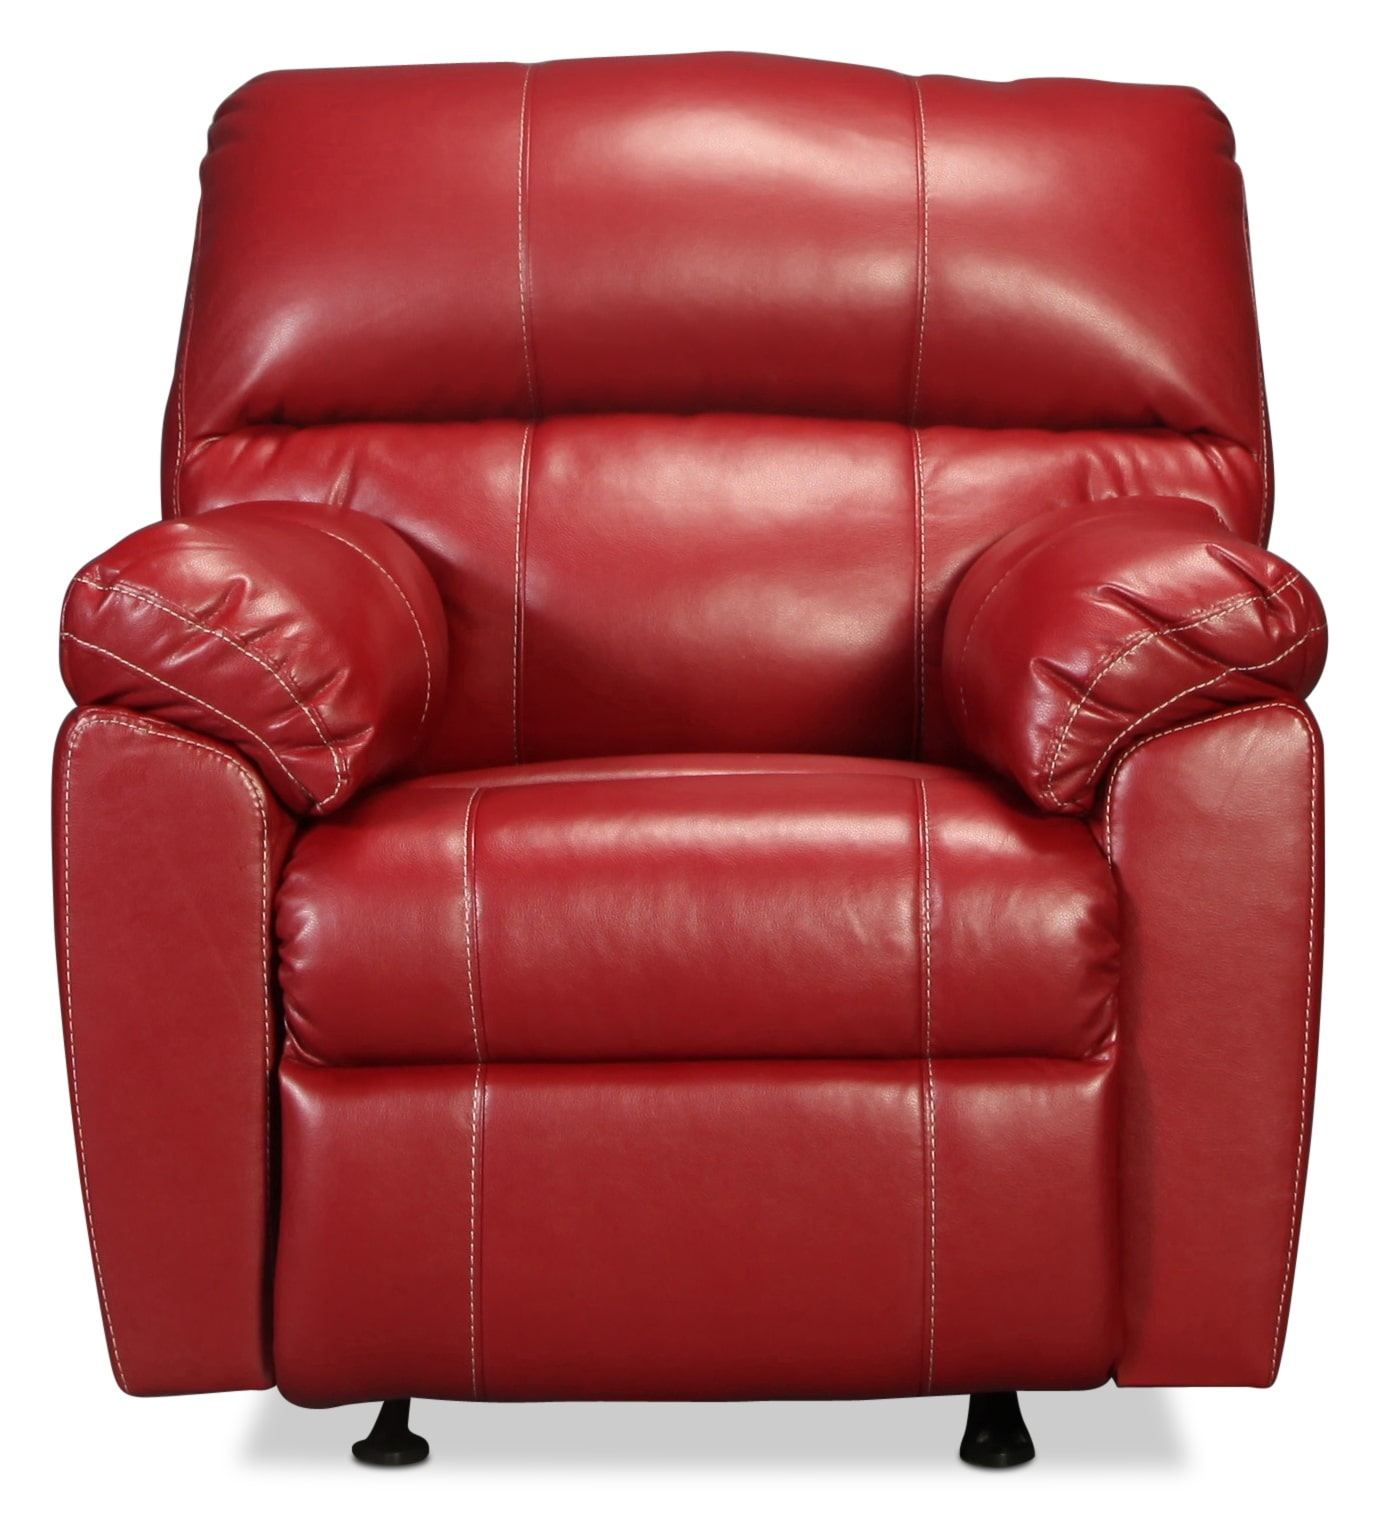 The Rigley Rocker Recliner - Red